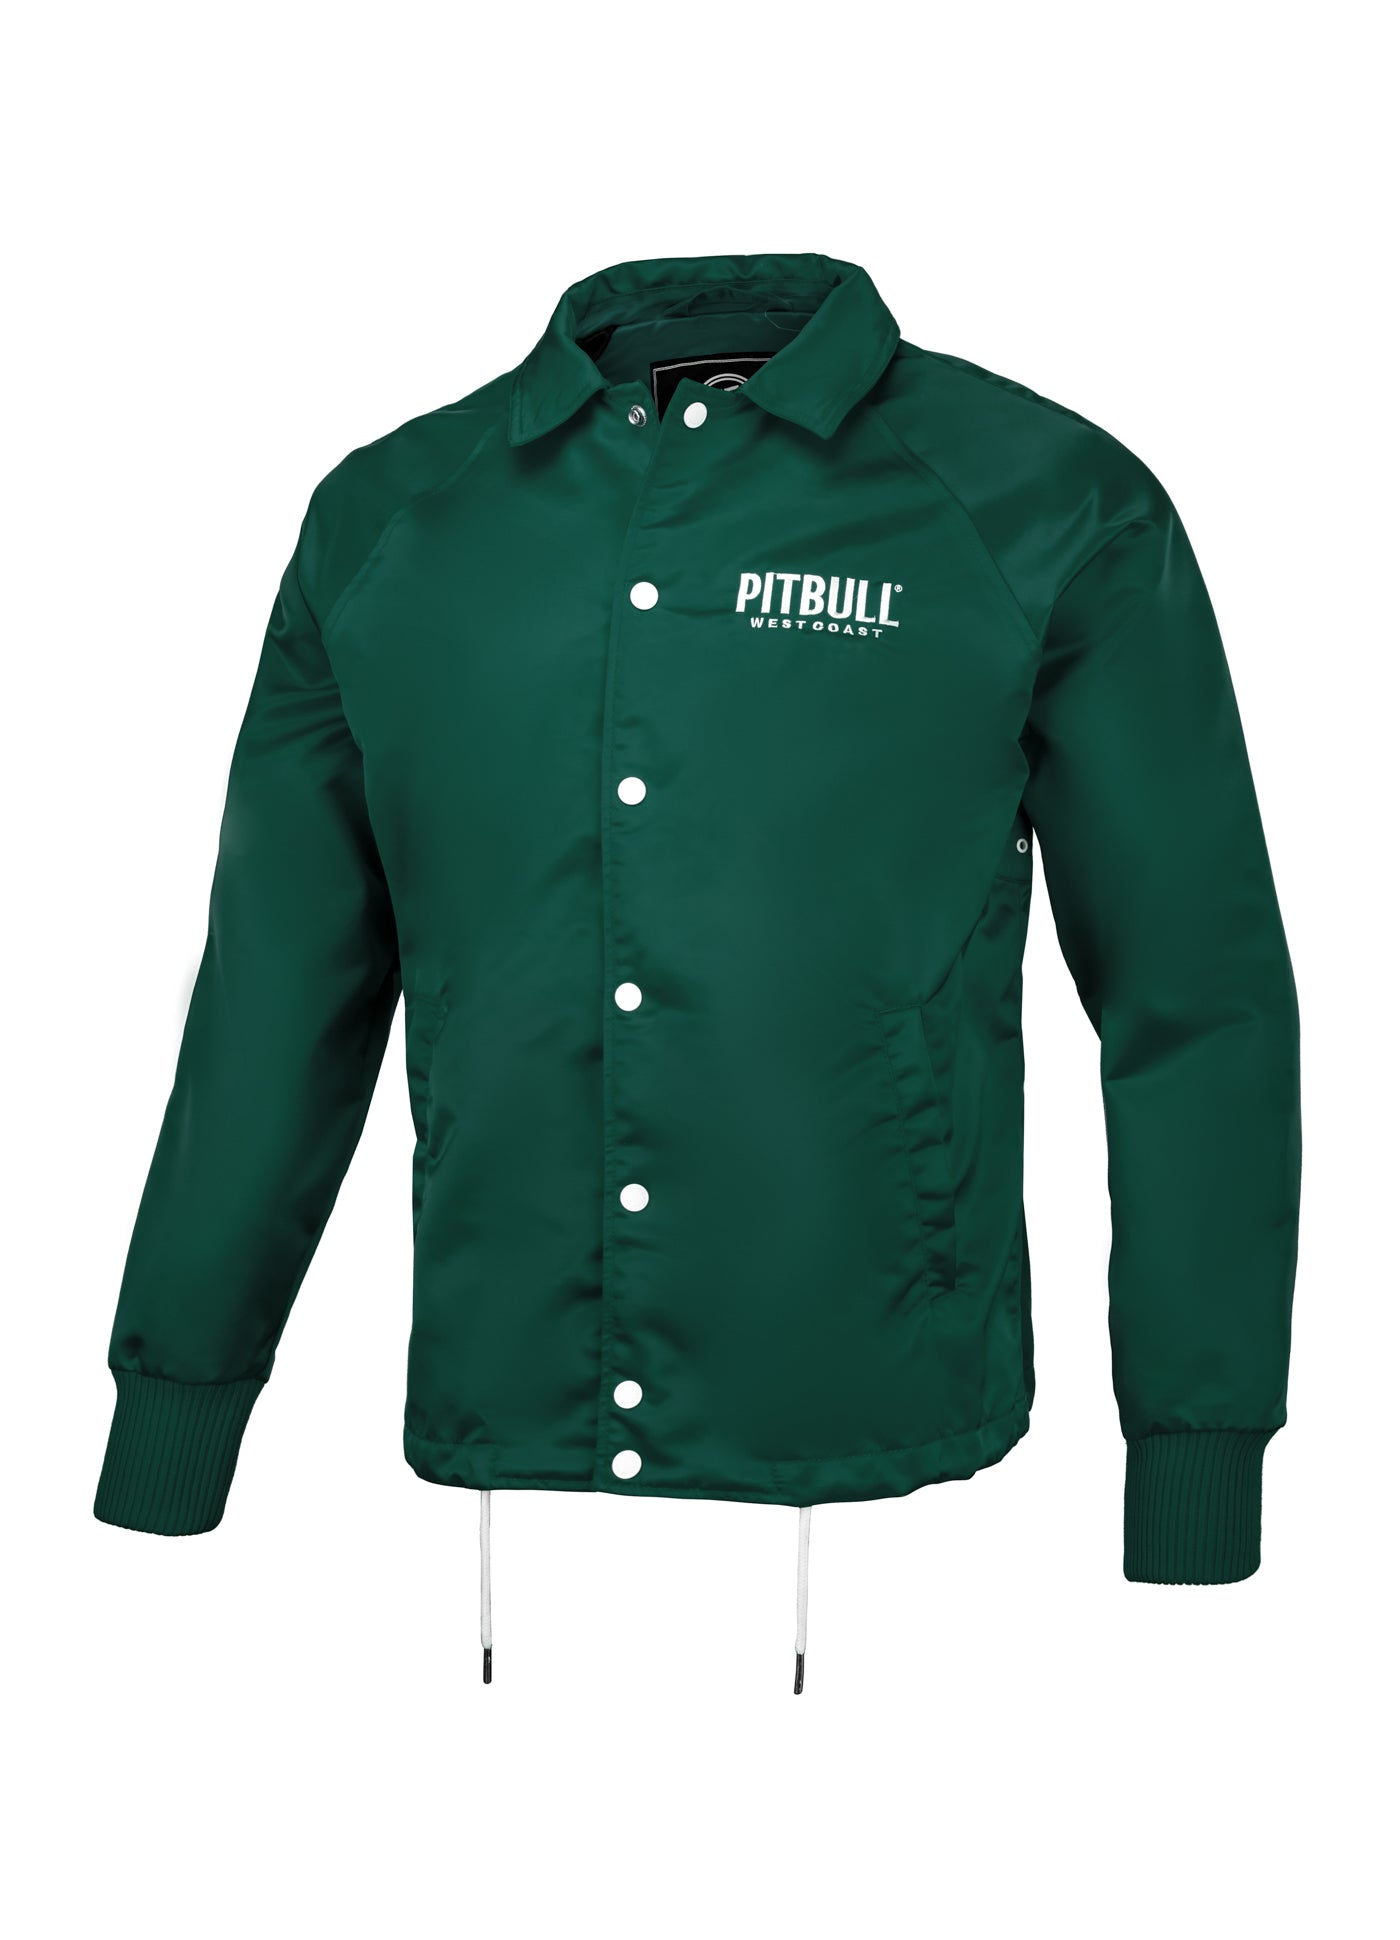 WICK Coach Jacket Green - pitbullwestcoast